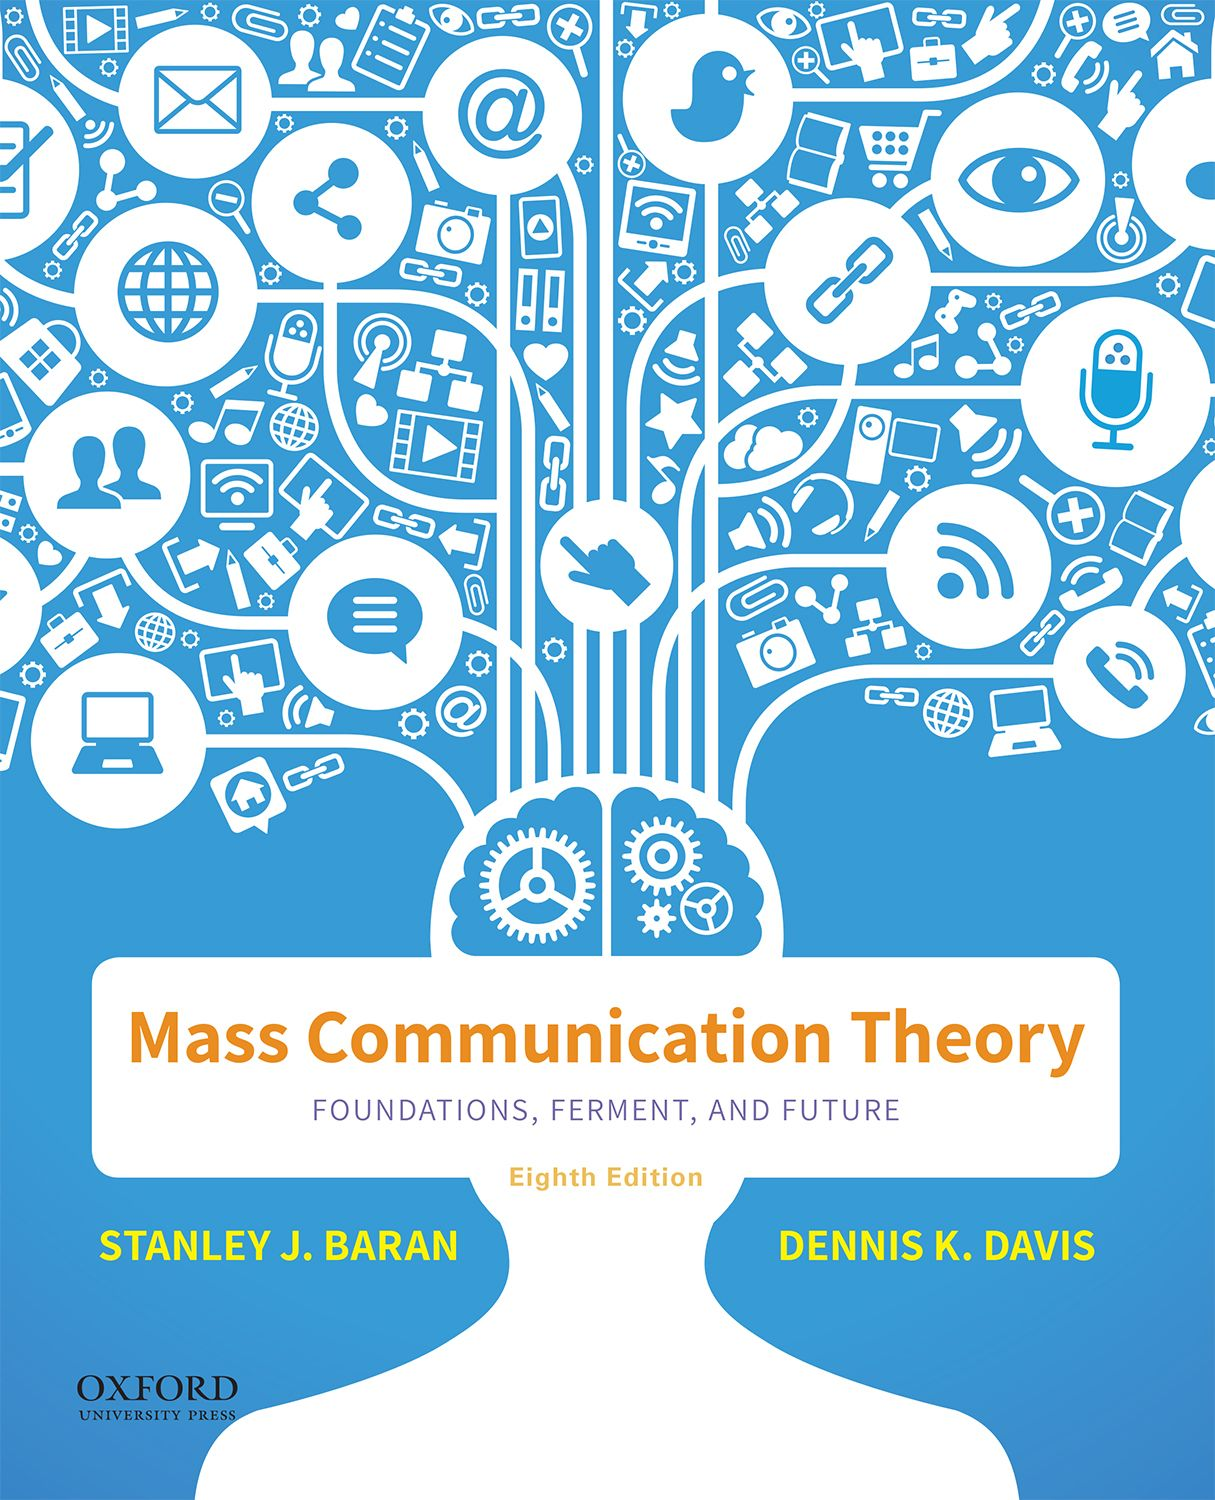 Mass Communication Theory: Foundations, Ferment, and Future 8e